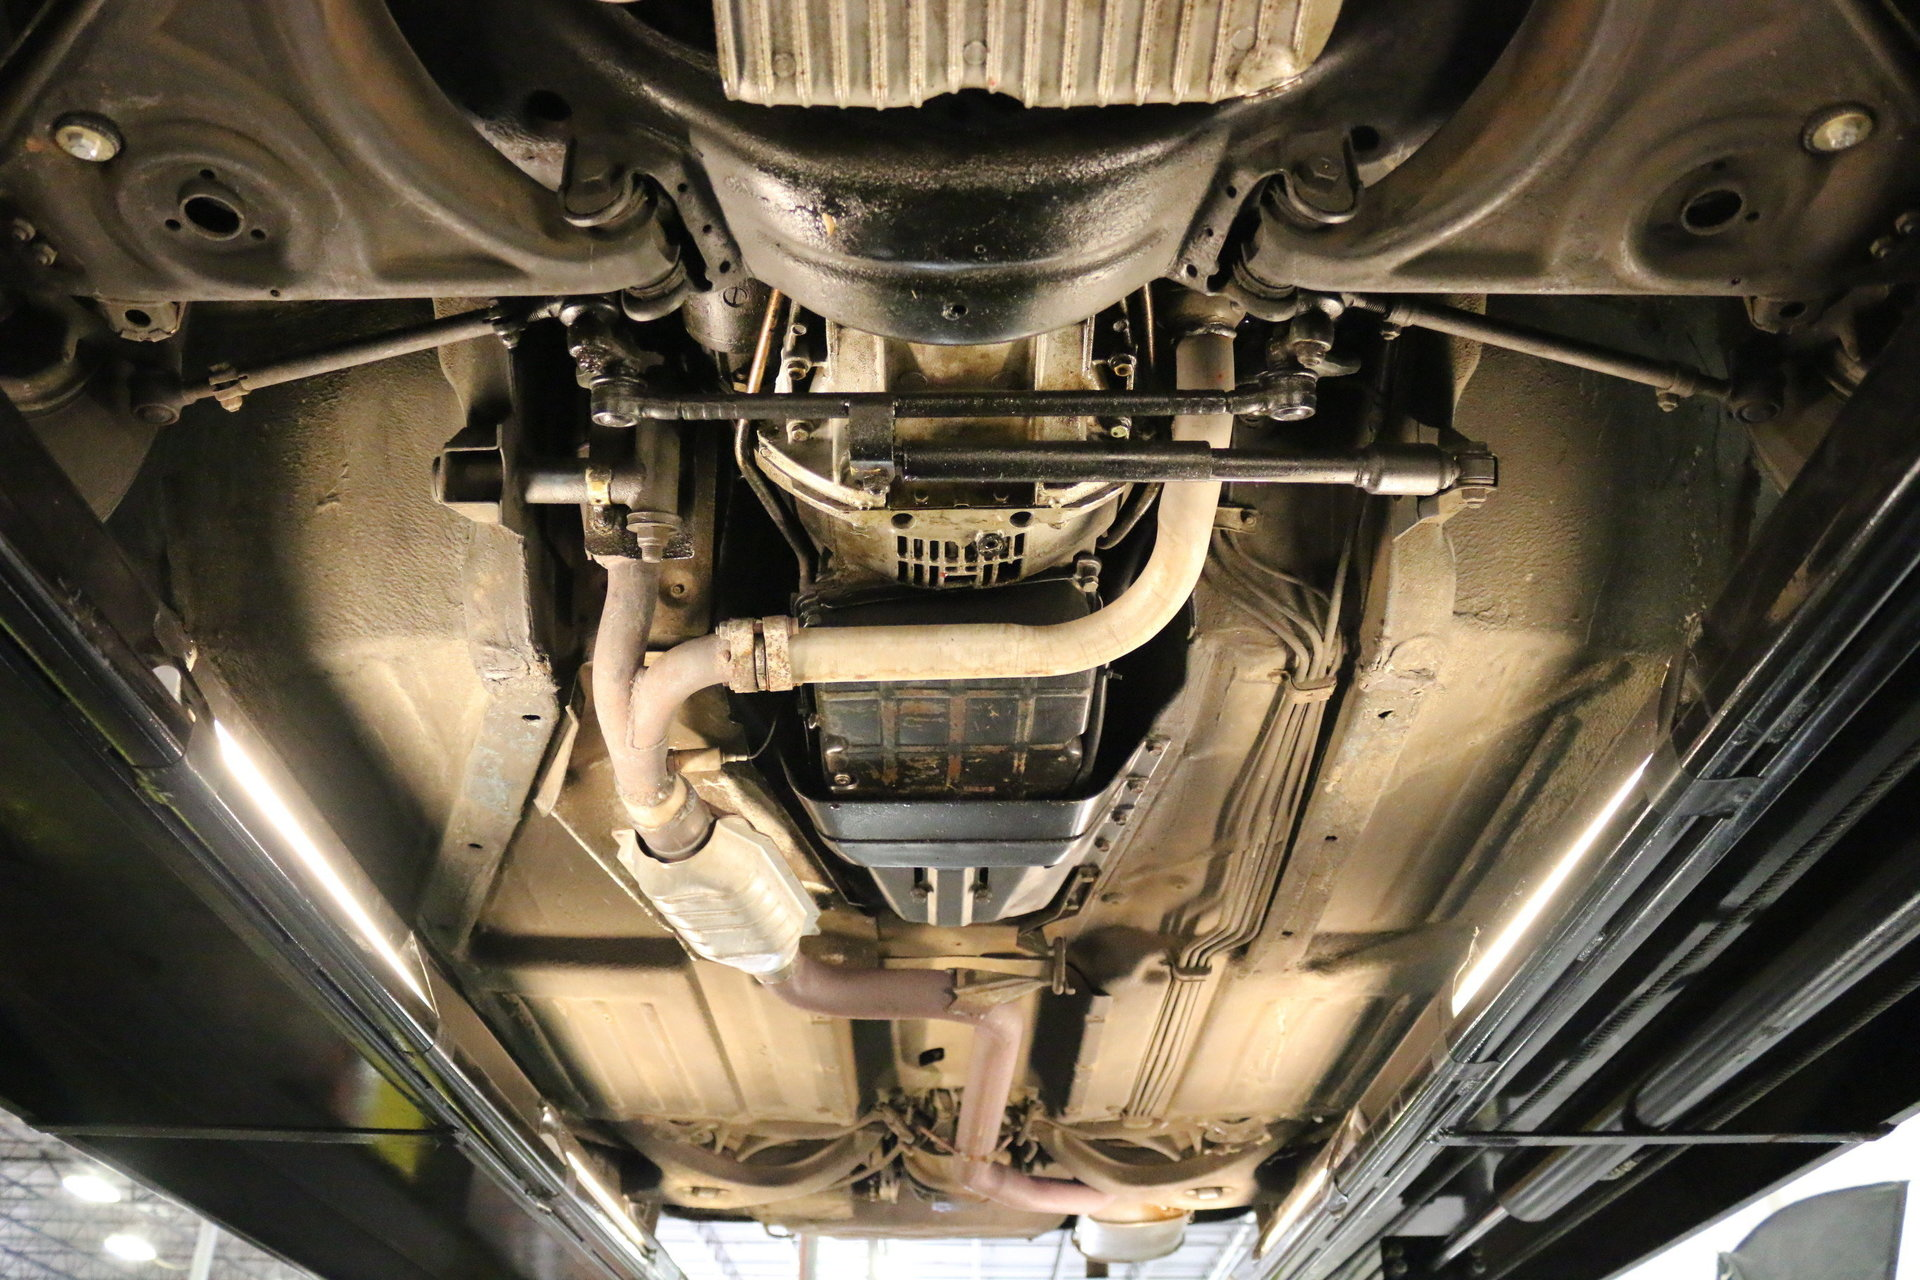 1984 Mercedes Benz 380sl Streetside Classics The Nations Engine Exhaust View 360